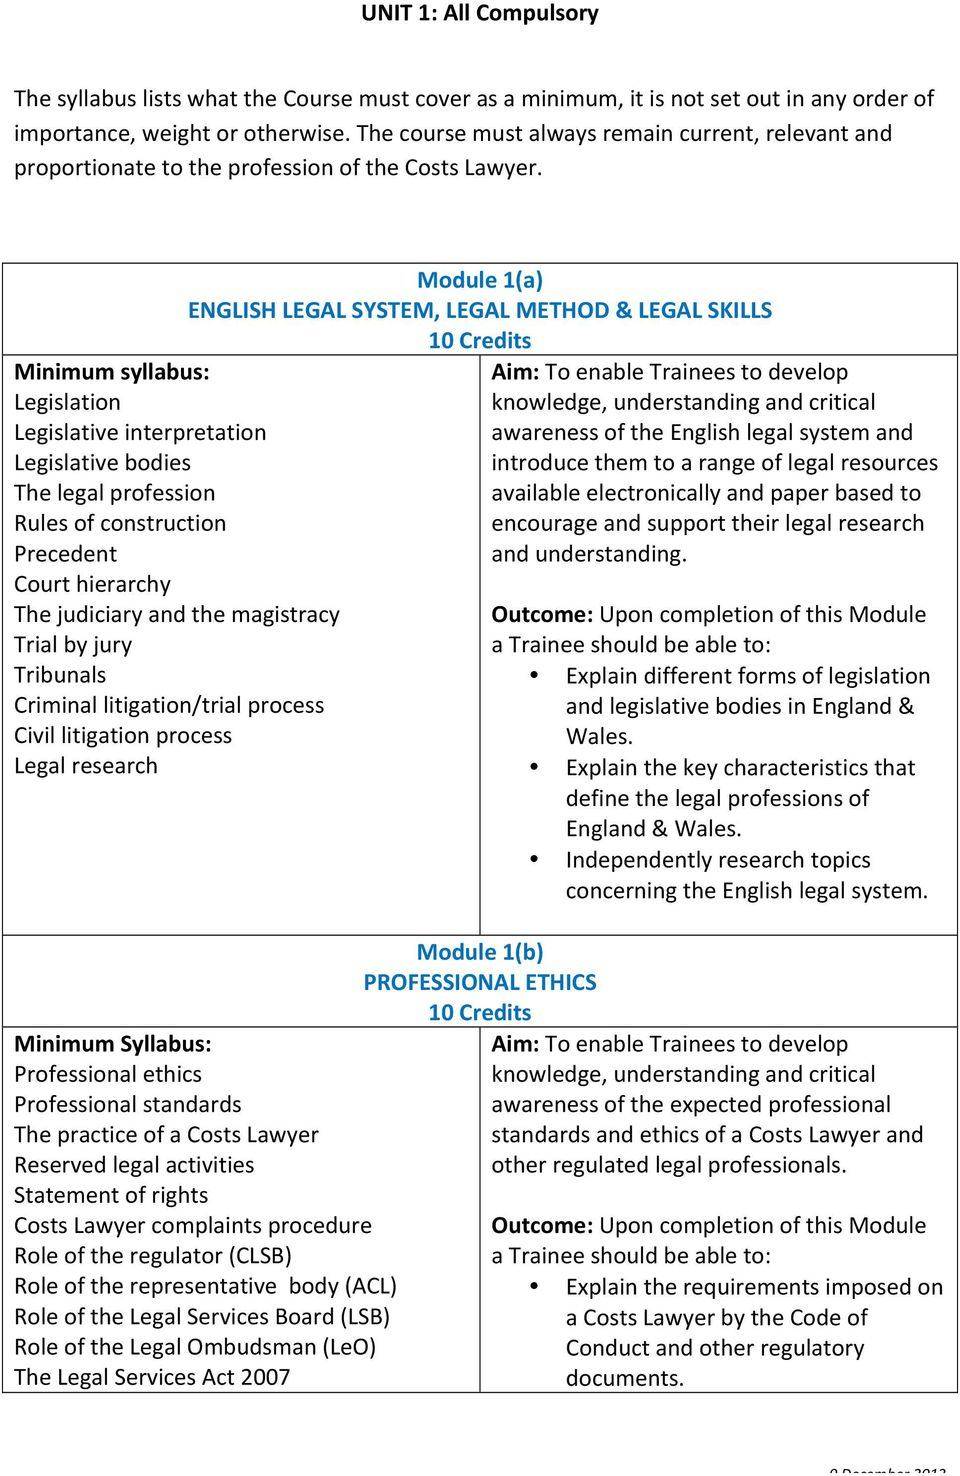 Module 1(a) ENGLISH LEGAL SYSTEM, LEGAL METHOD & LEGAL SKILLS Minimum syllabus: Legislation Legislative interpretation Legislative bodies The legal profession Rules of construction Precedent Court